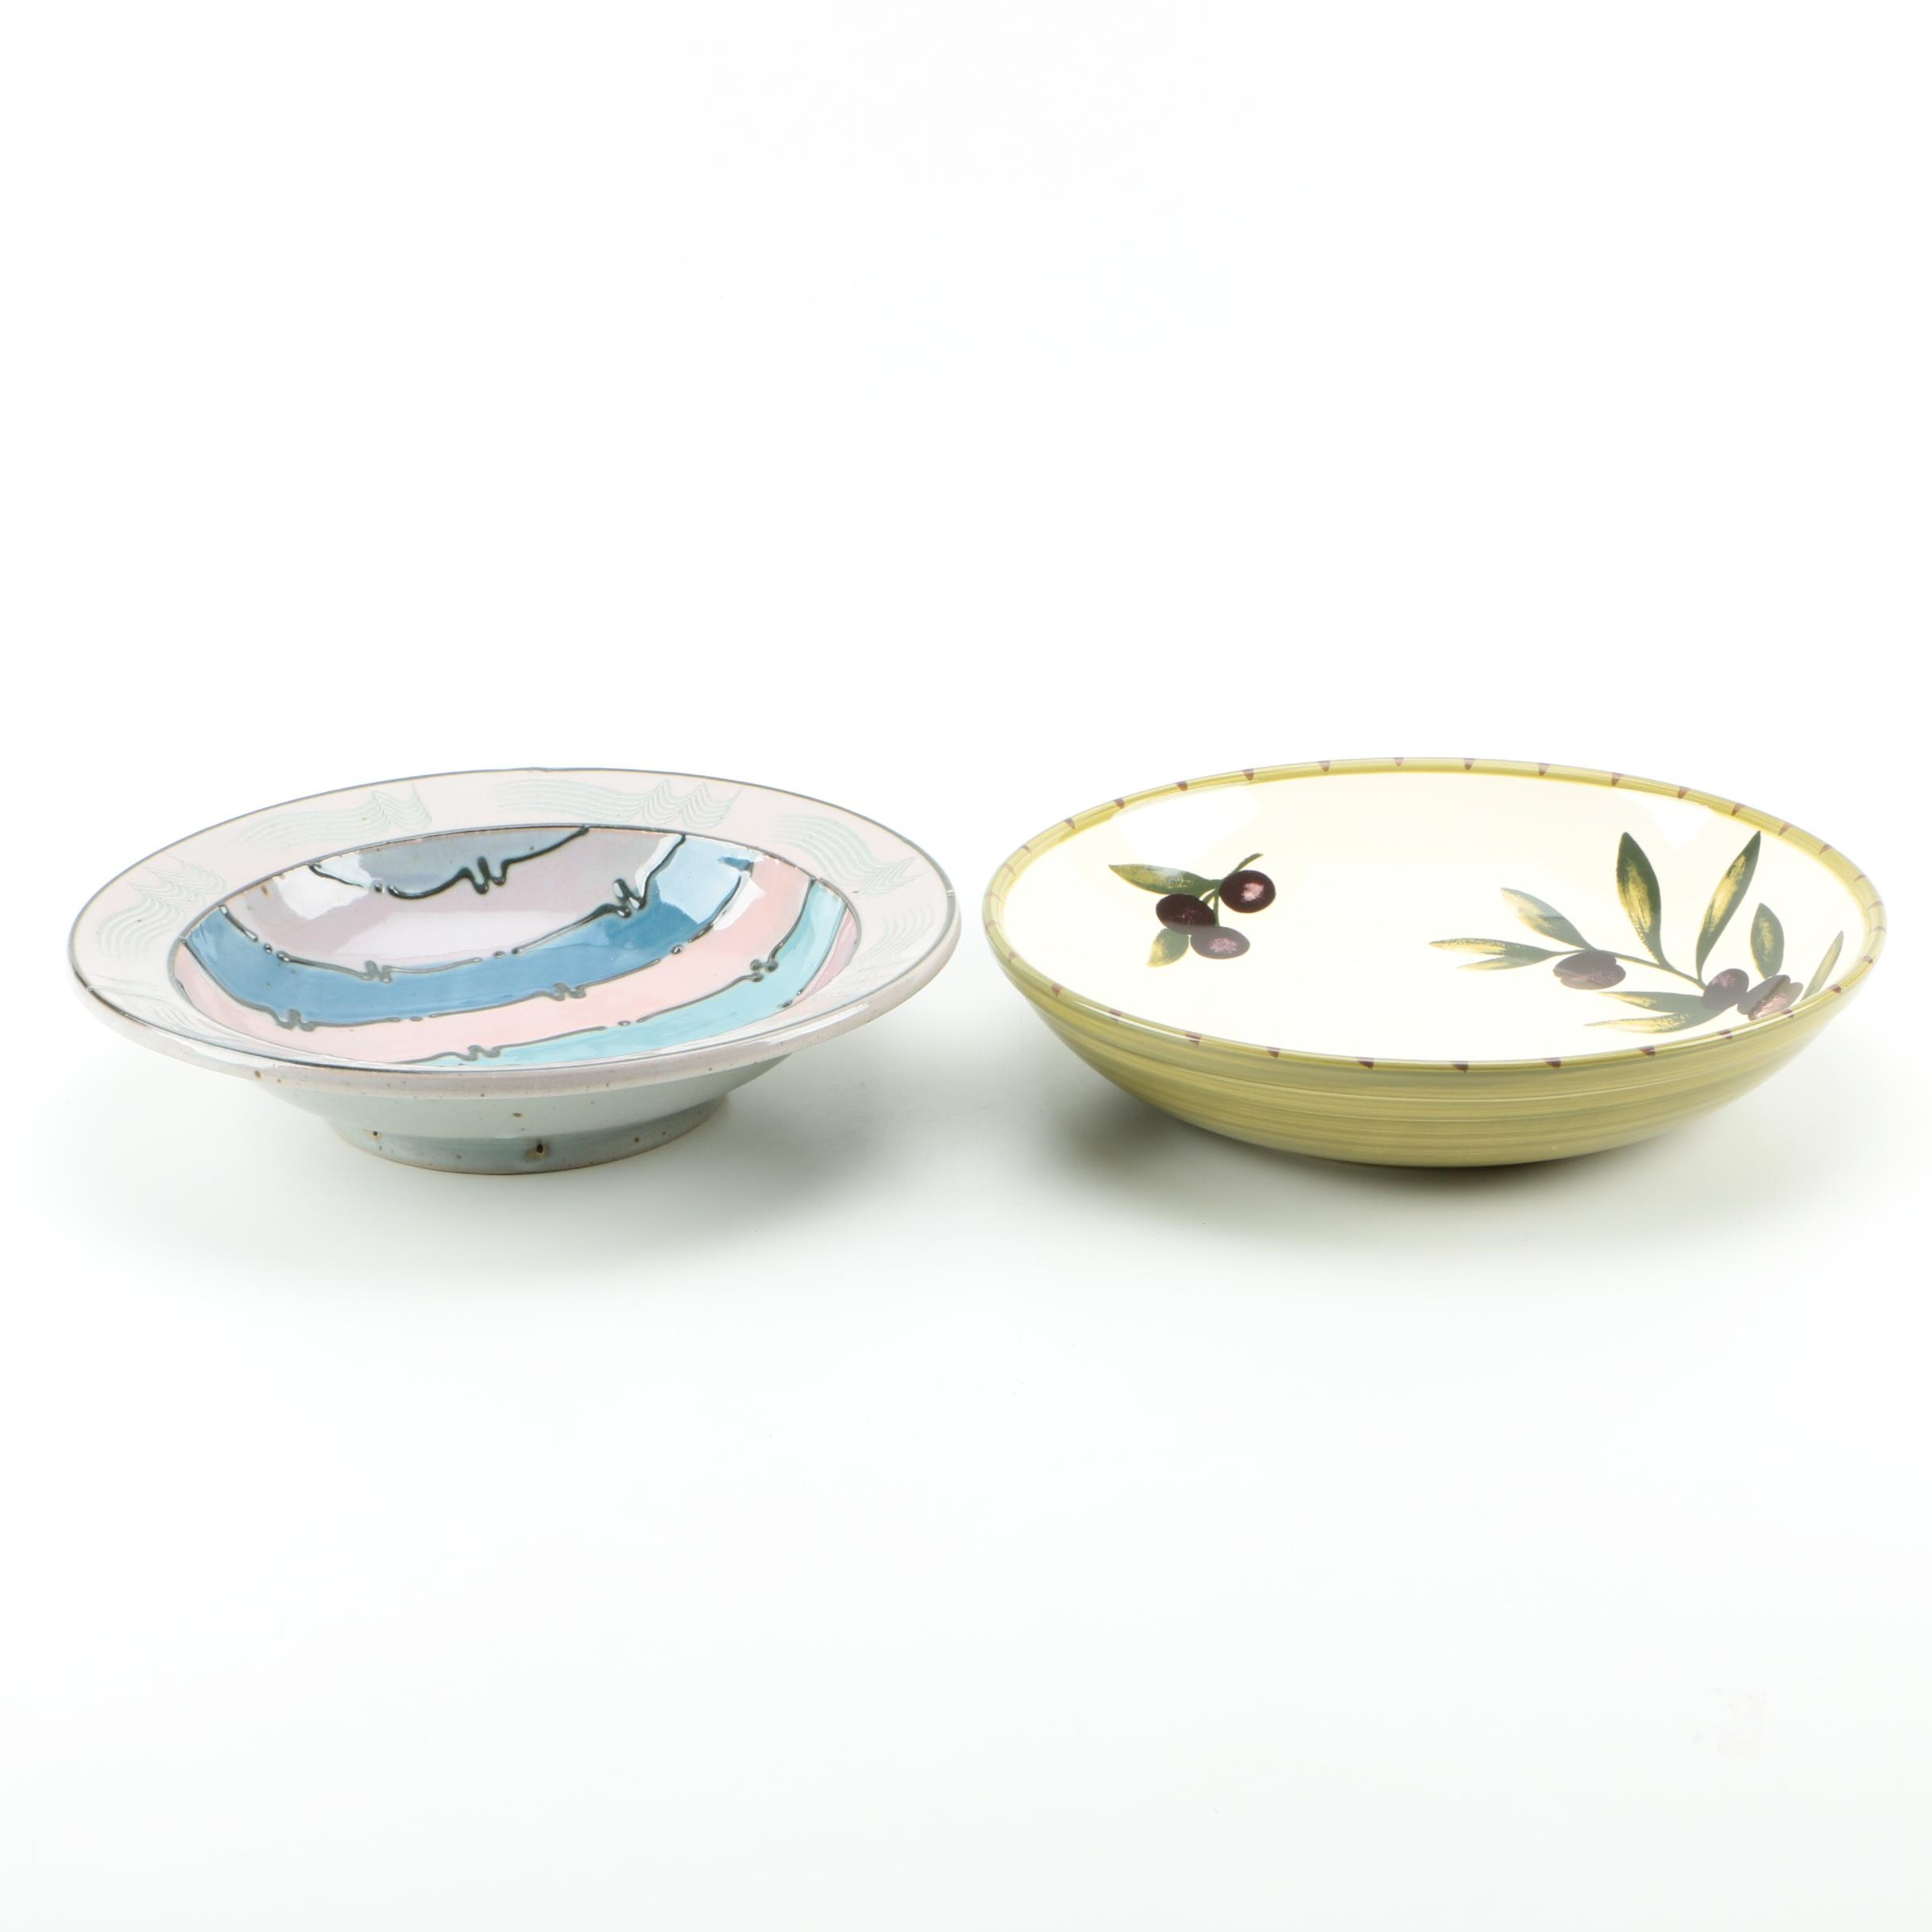 Hand-Painted Ceramic Bowls Featuring Williams-Sonoma